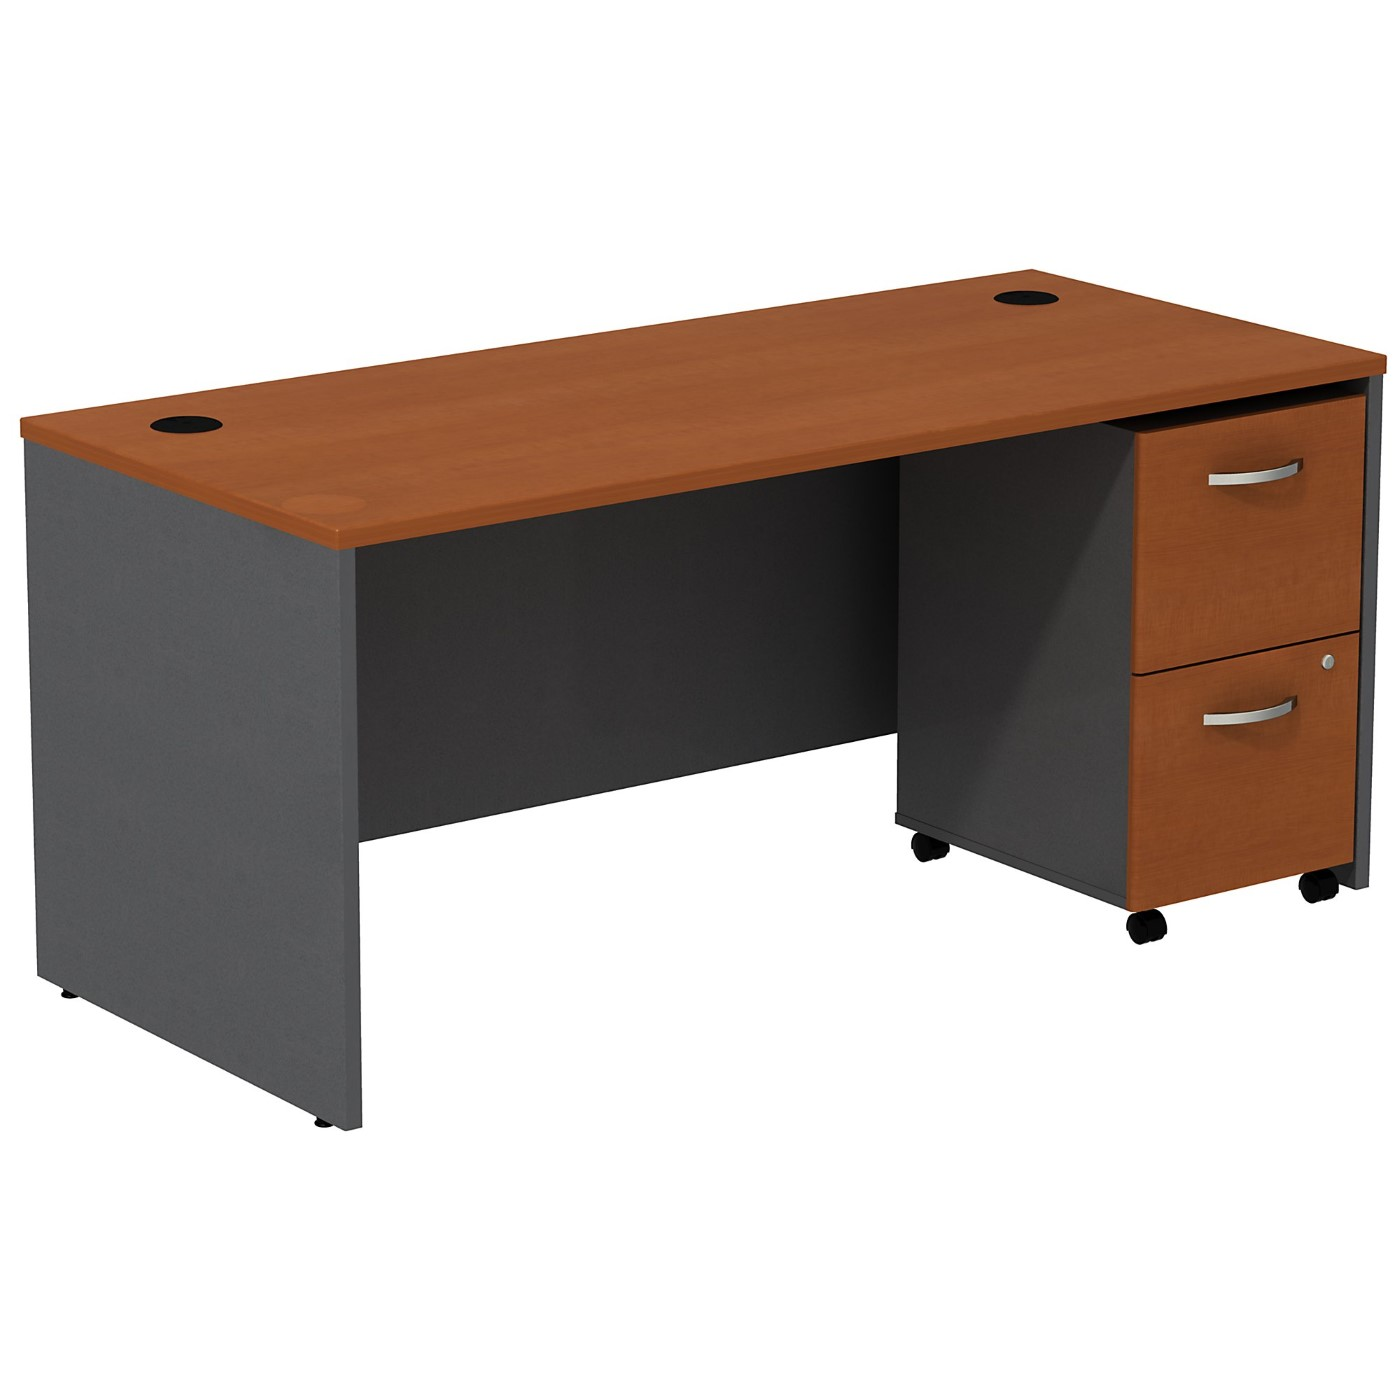 BUSH BUSINESS FURNITURE SERIES C DESK WITH 2 DRAWER MOBILE PEDESTAL. FREE SHIPPING SALE DEDUCT 10% MORE ENTER '10percent' IN COUPON CODE BOX WHILE CHECKING OUT.